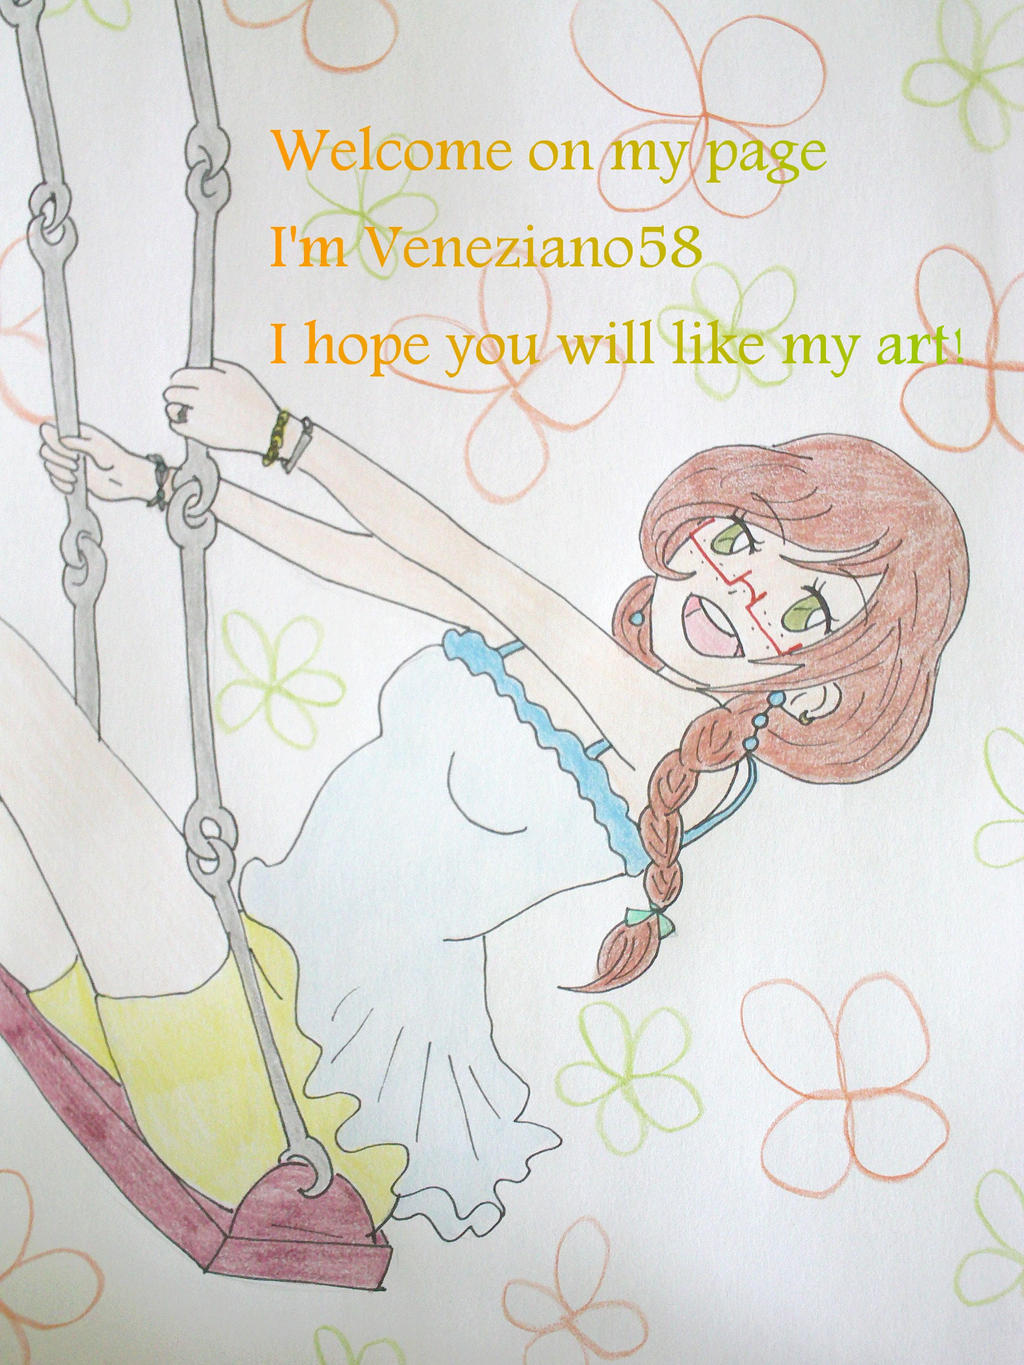 Veneziano58's Profile Picture